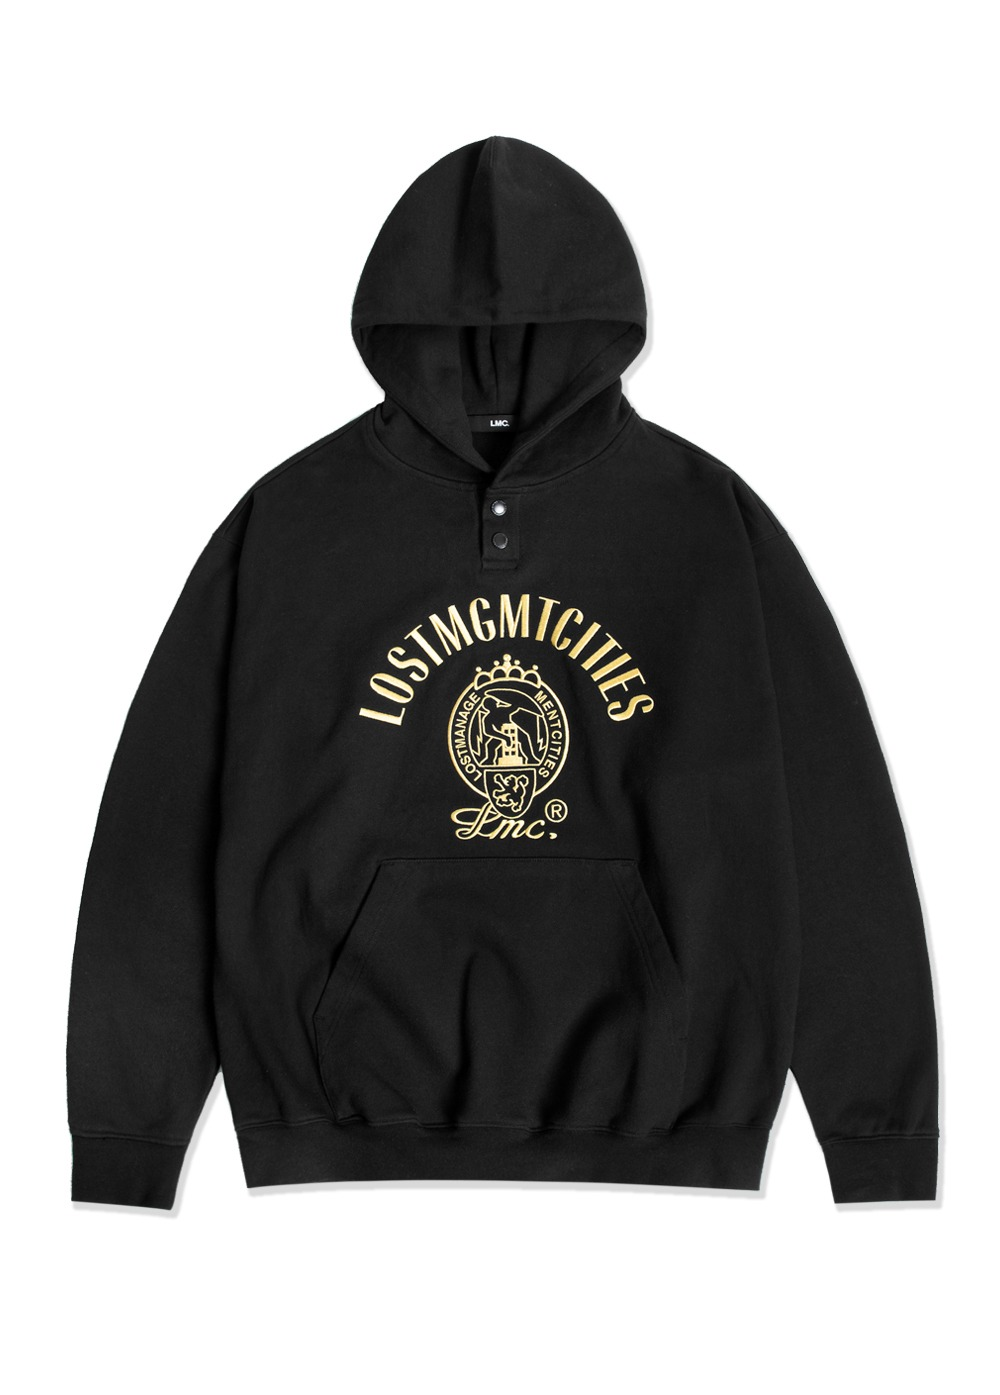 LMC DEFENSEWORK OVERSIZED HENLEY HOODIE black